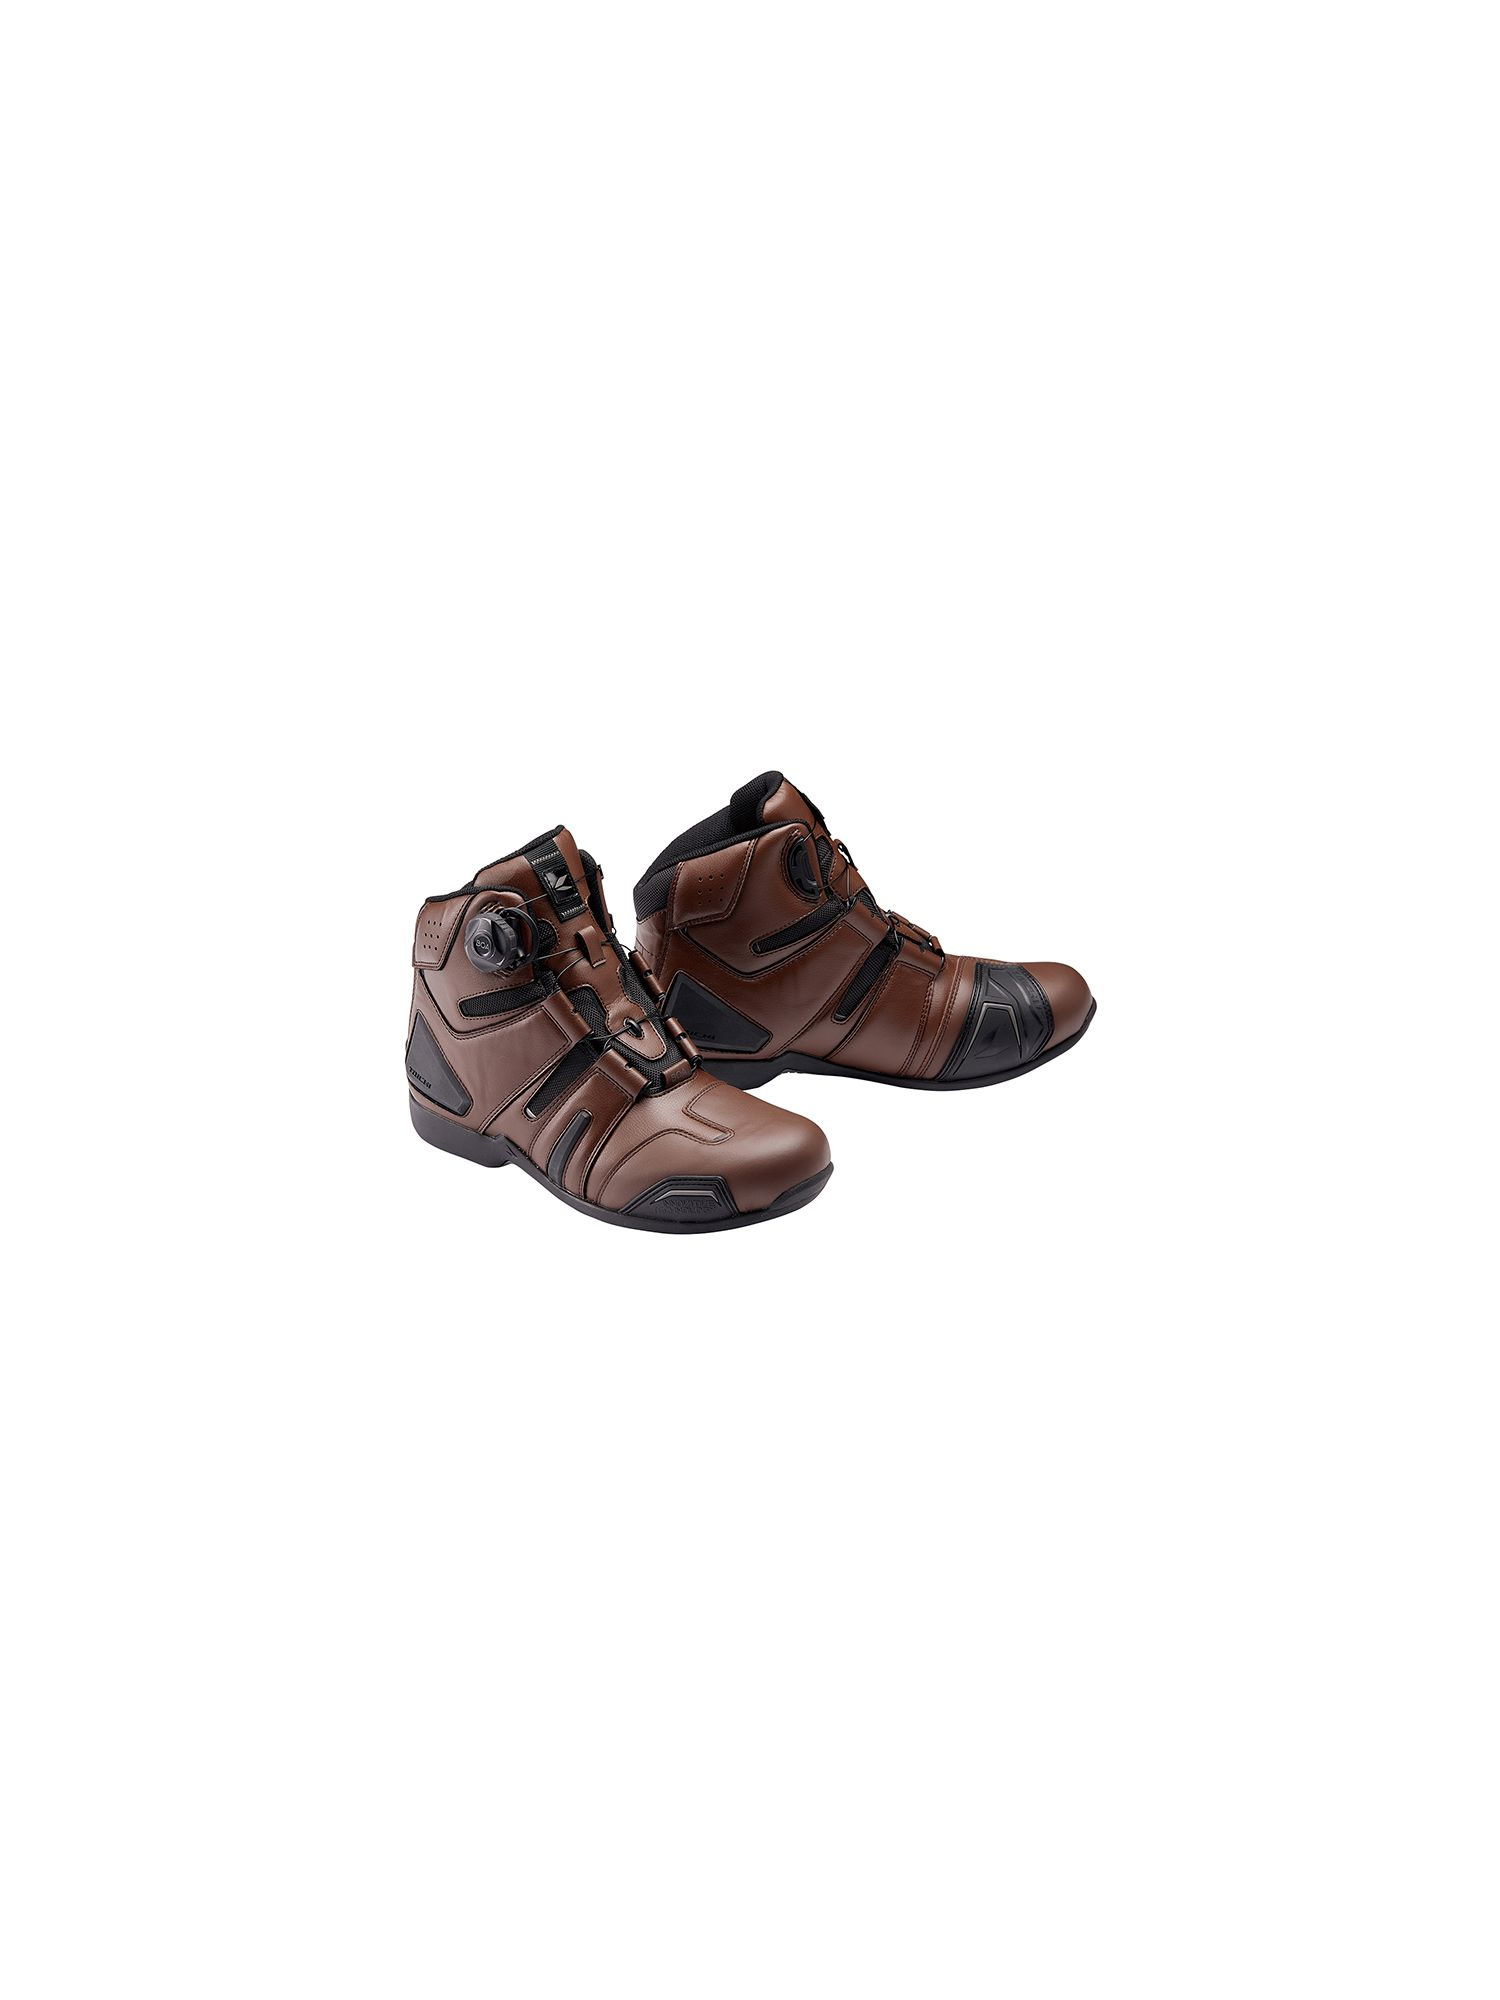 RSS006 | DRYMASTER BOA RIDING SHOES[7colors]